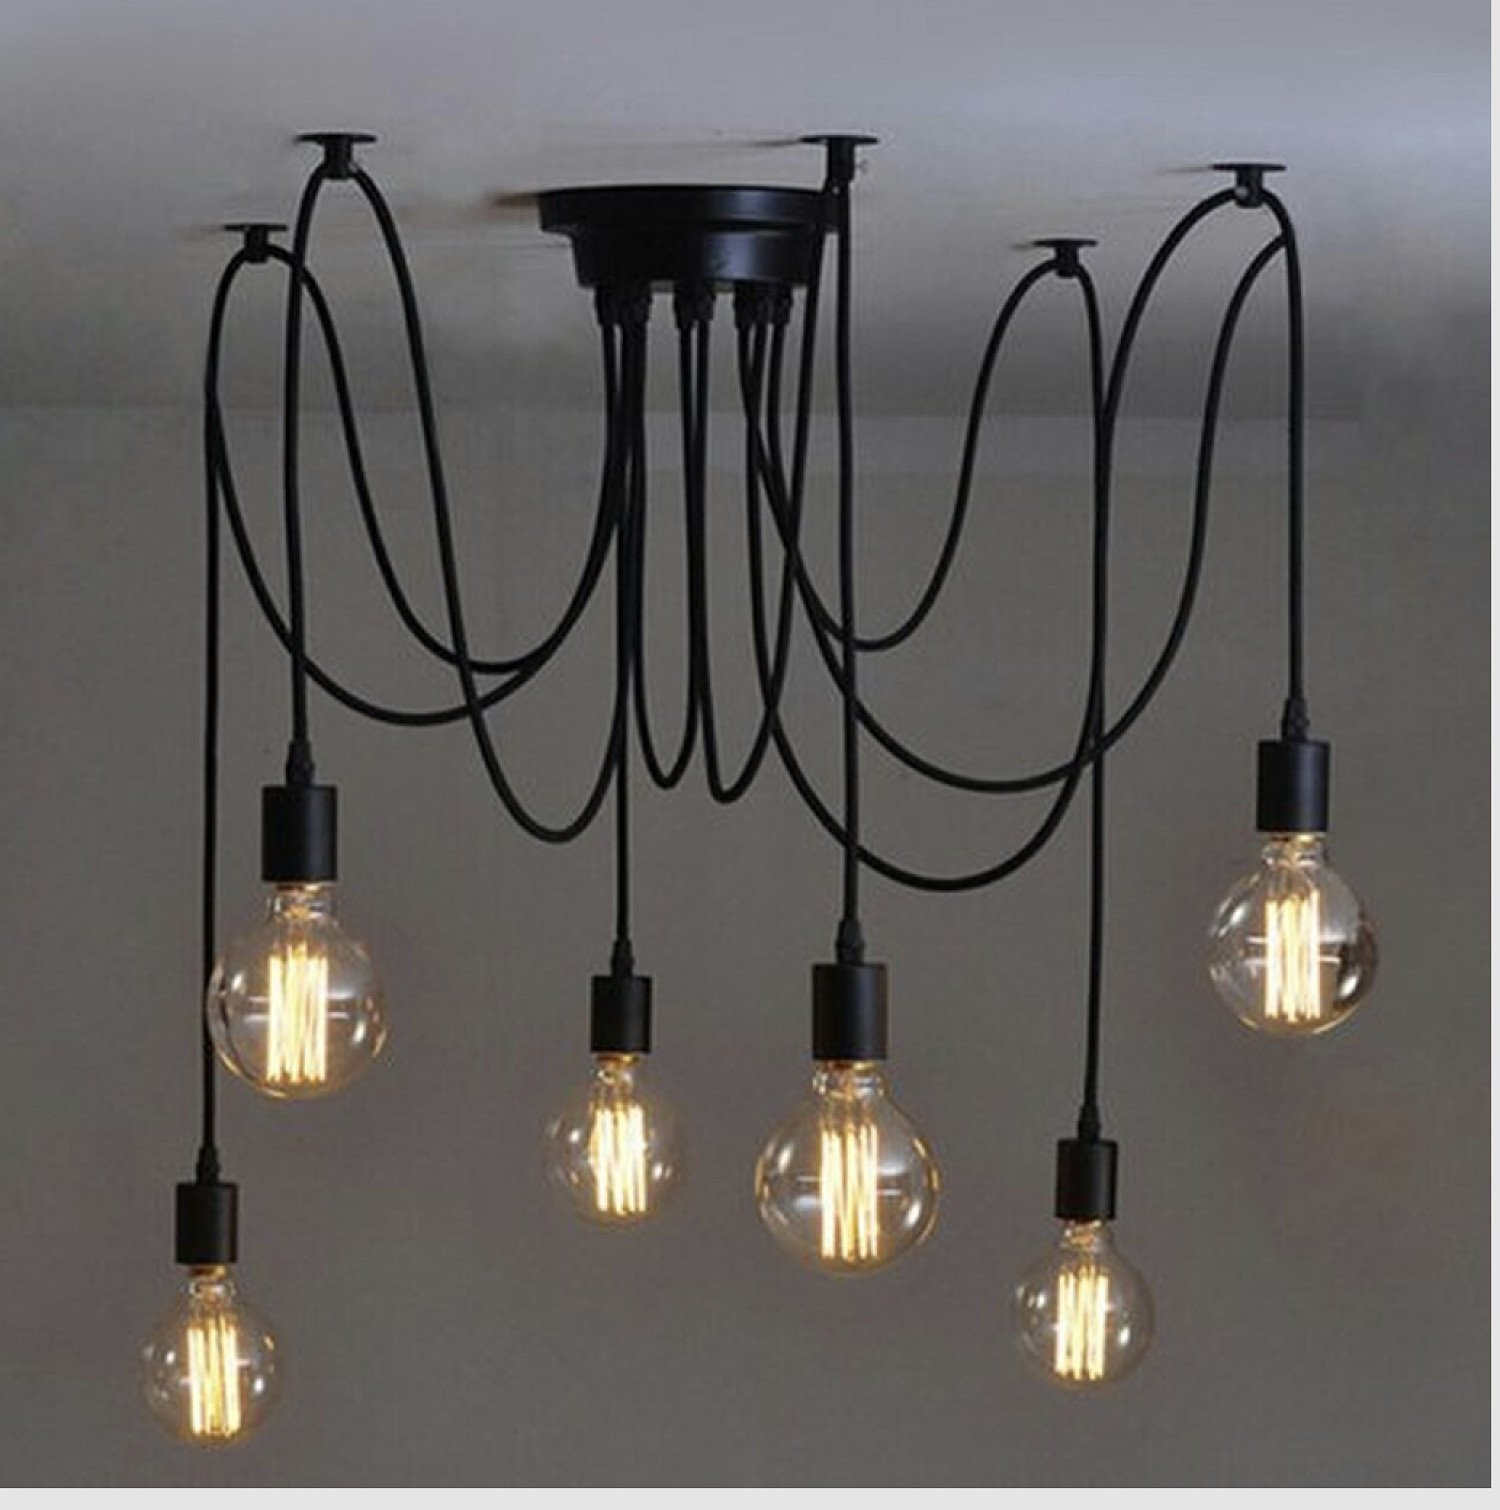 Vintage Industrial Style Chandelier Pendant Lights With 6 Heads